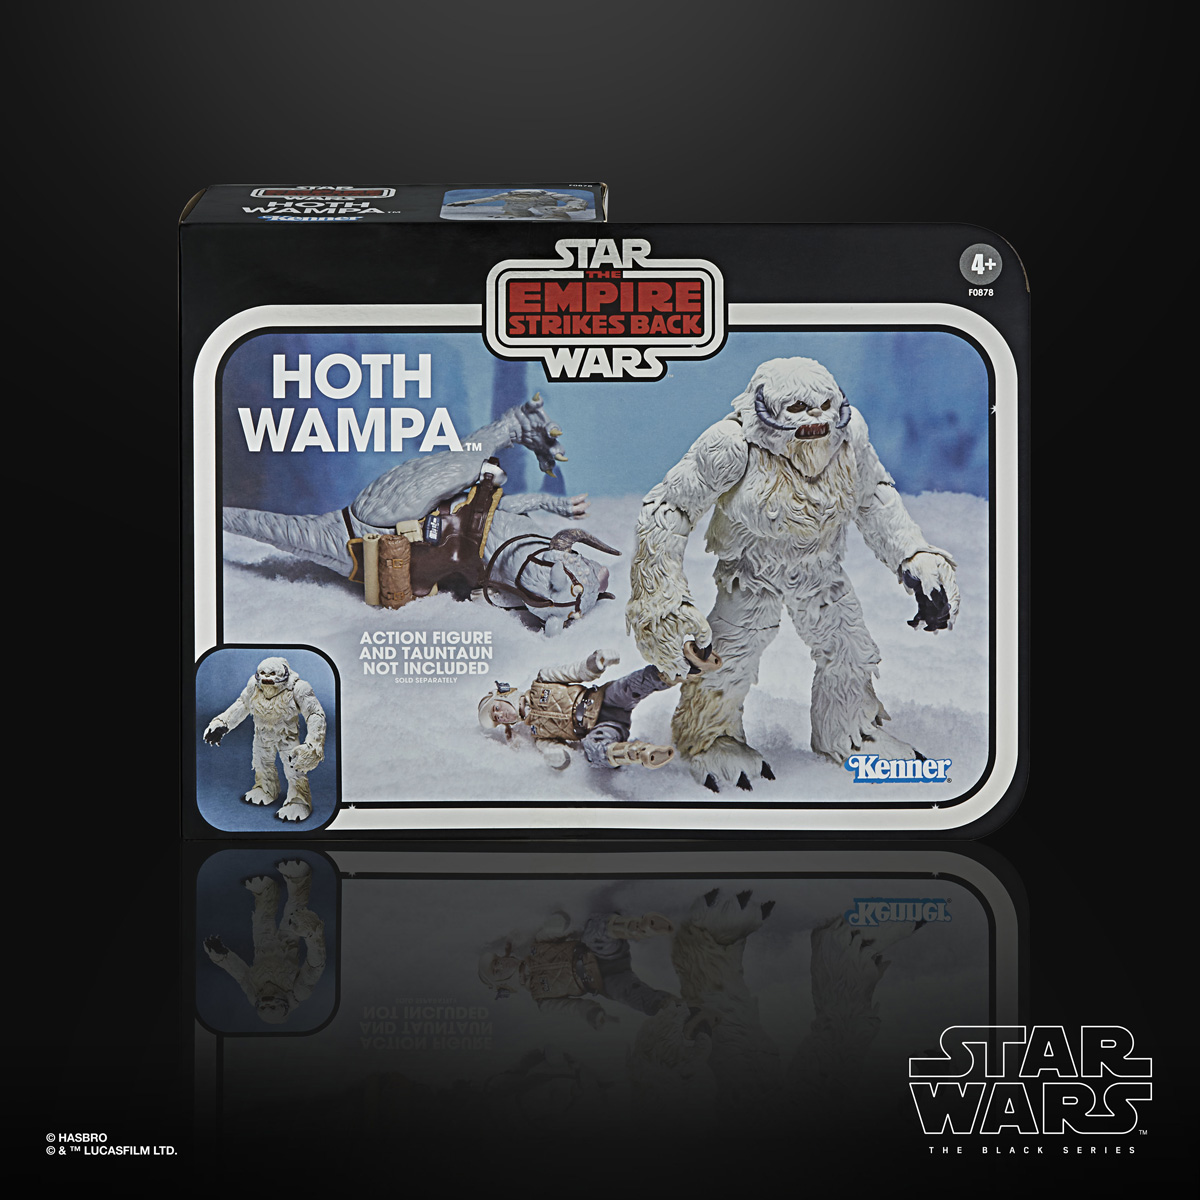 star-wars-the-black-series-6-inch-scale-hoth-wampa-figure-pckging-2